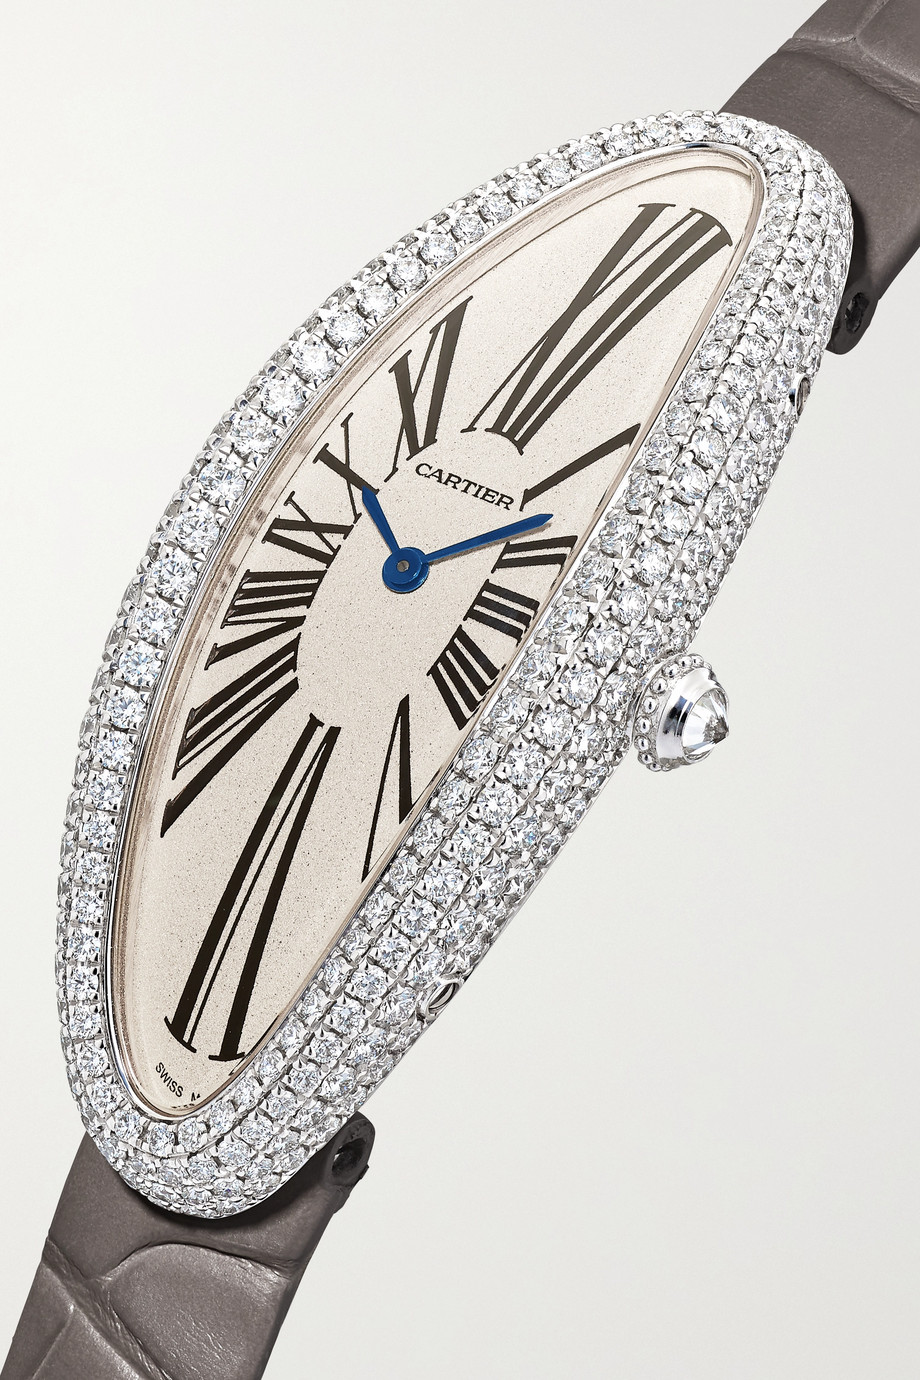 Cartier Baignoire Allongée 21mm medium 18-karat white gold, alligator and diamond watch